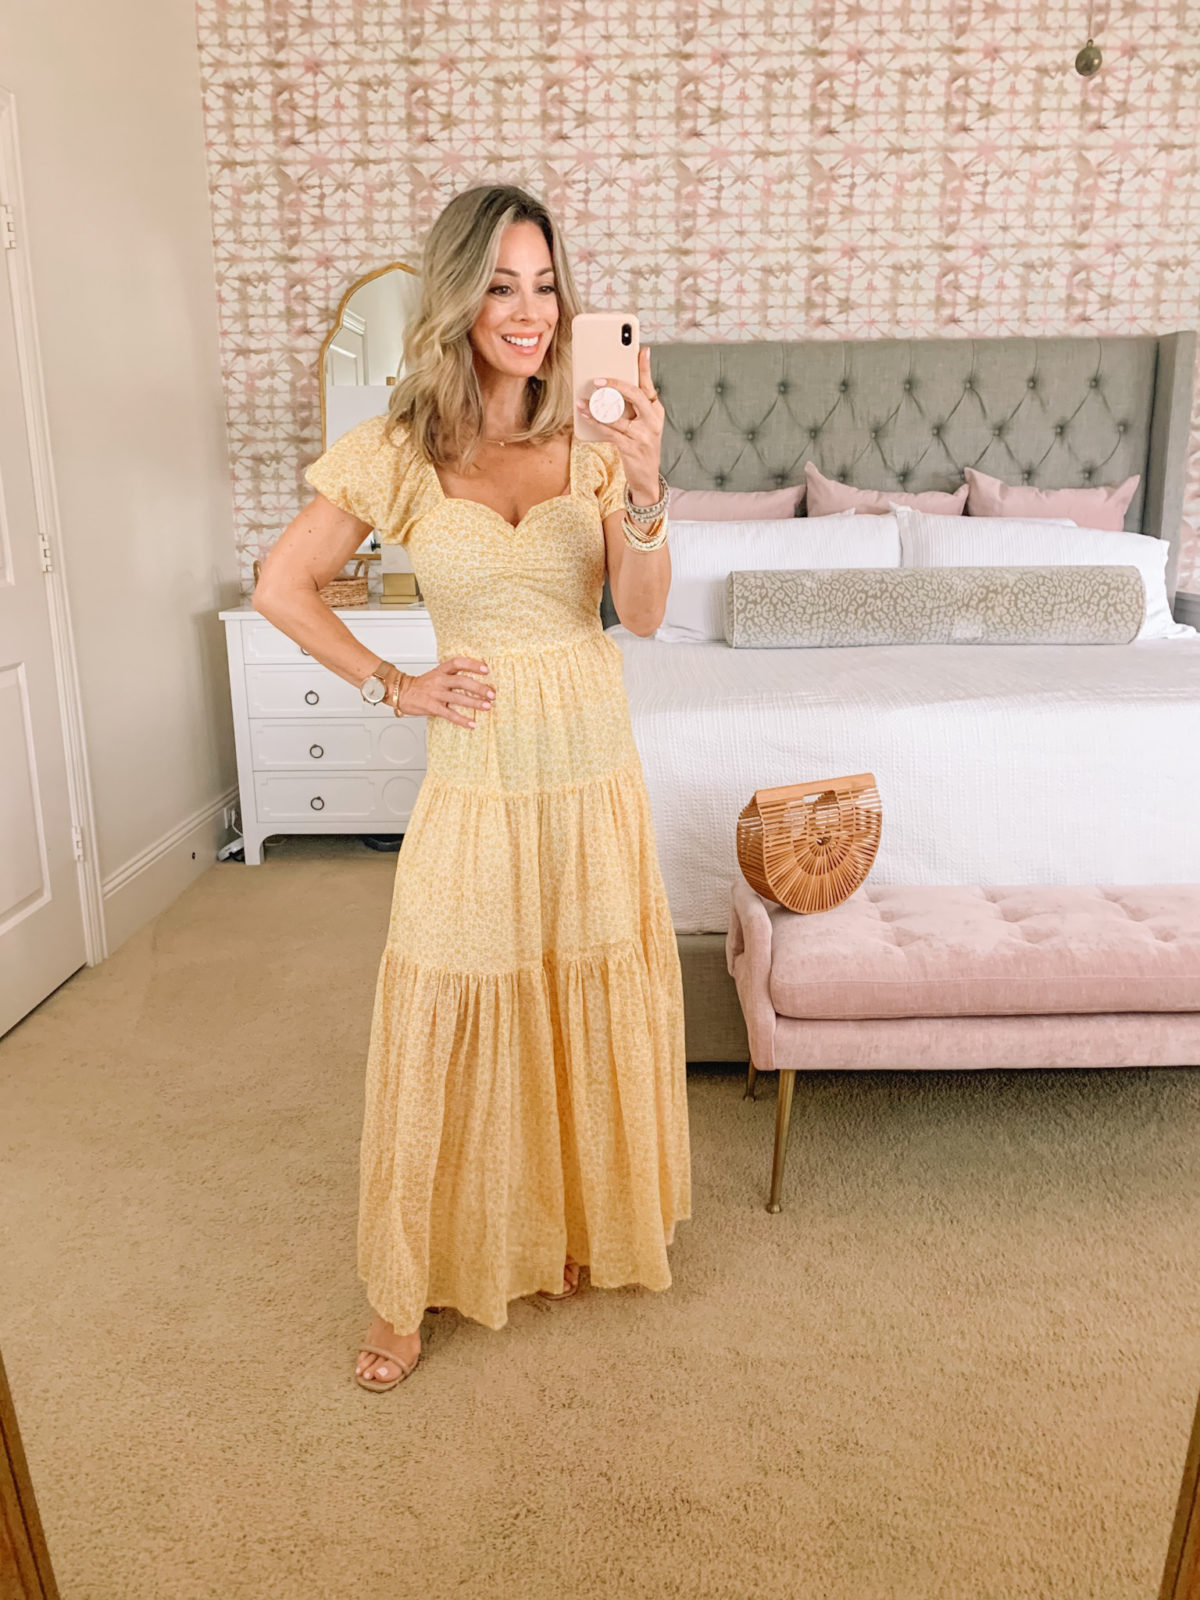 Dressing Room Finds, Yellow Sundress, Bamboo Clutch, Sandals